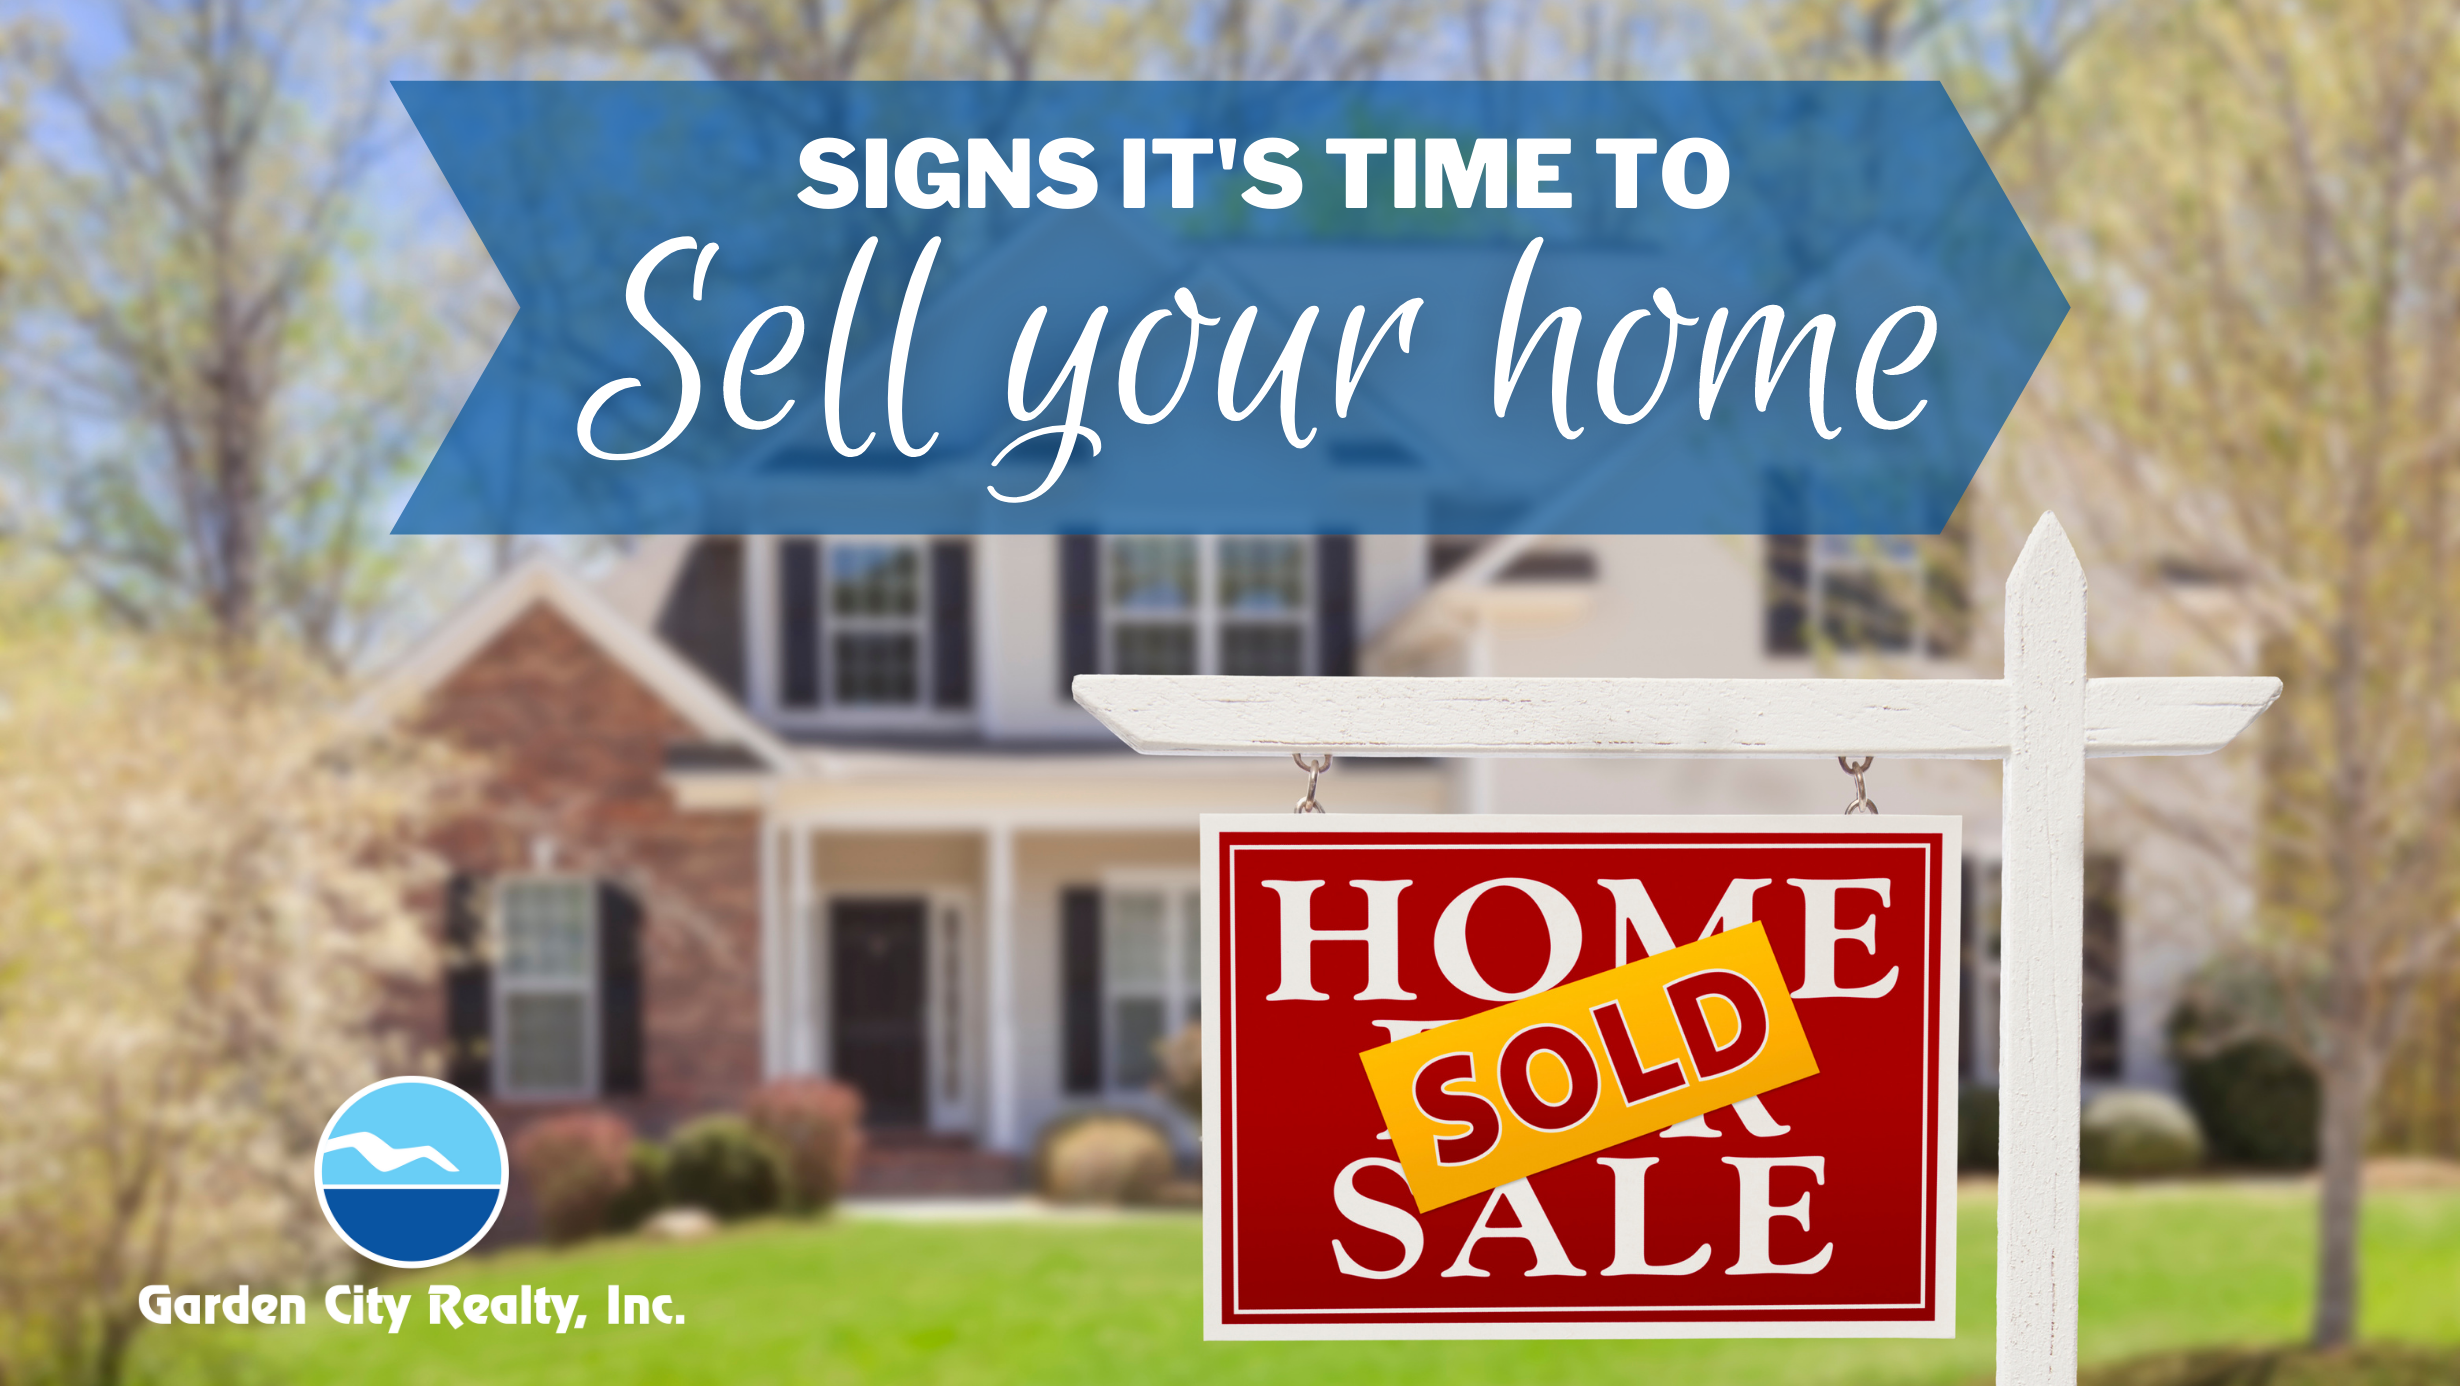 SIGNS IT IS TIME TO SELL